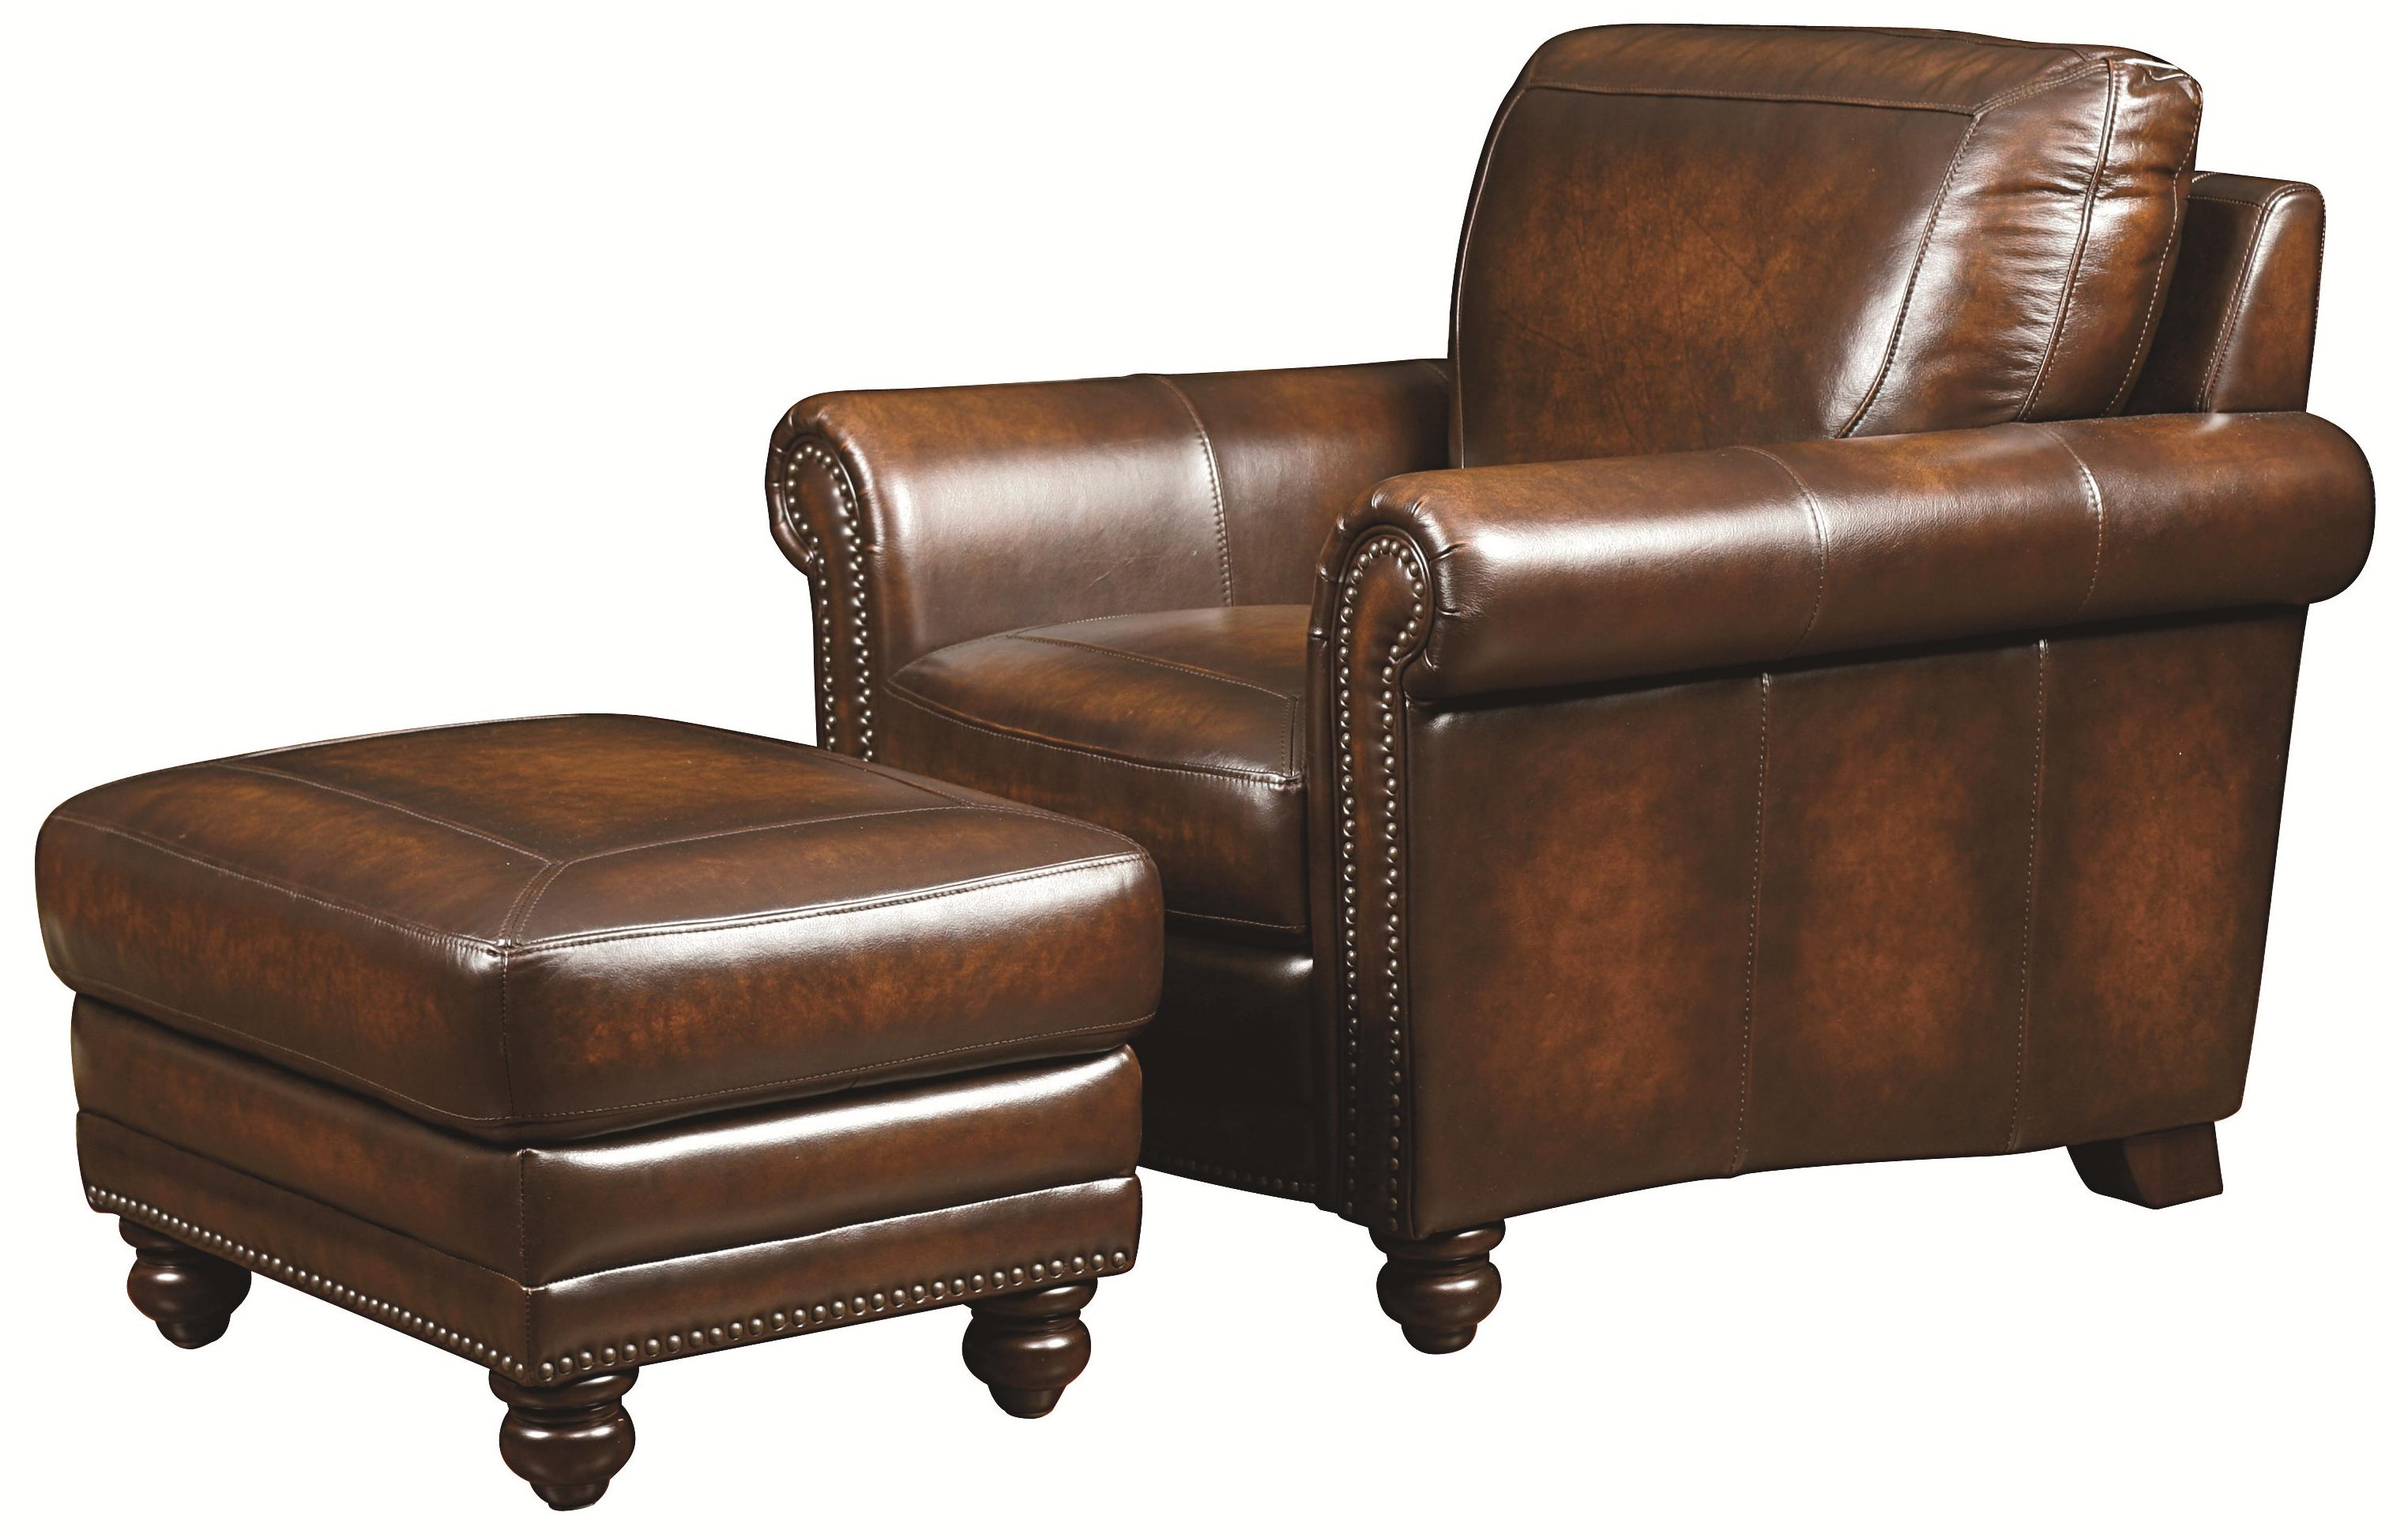 Bassett hamilton 3959 01s leather ottoman with nail head for Hudsons furniture